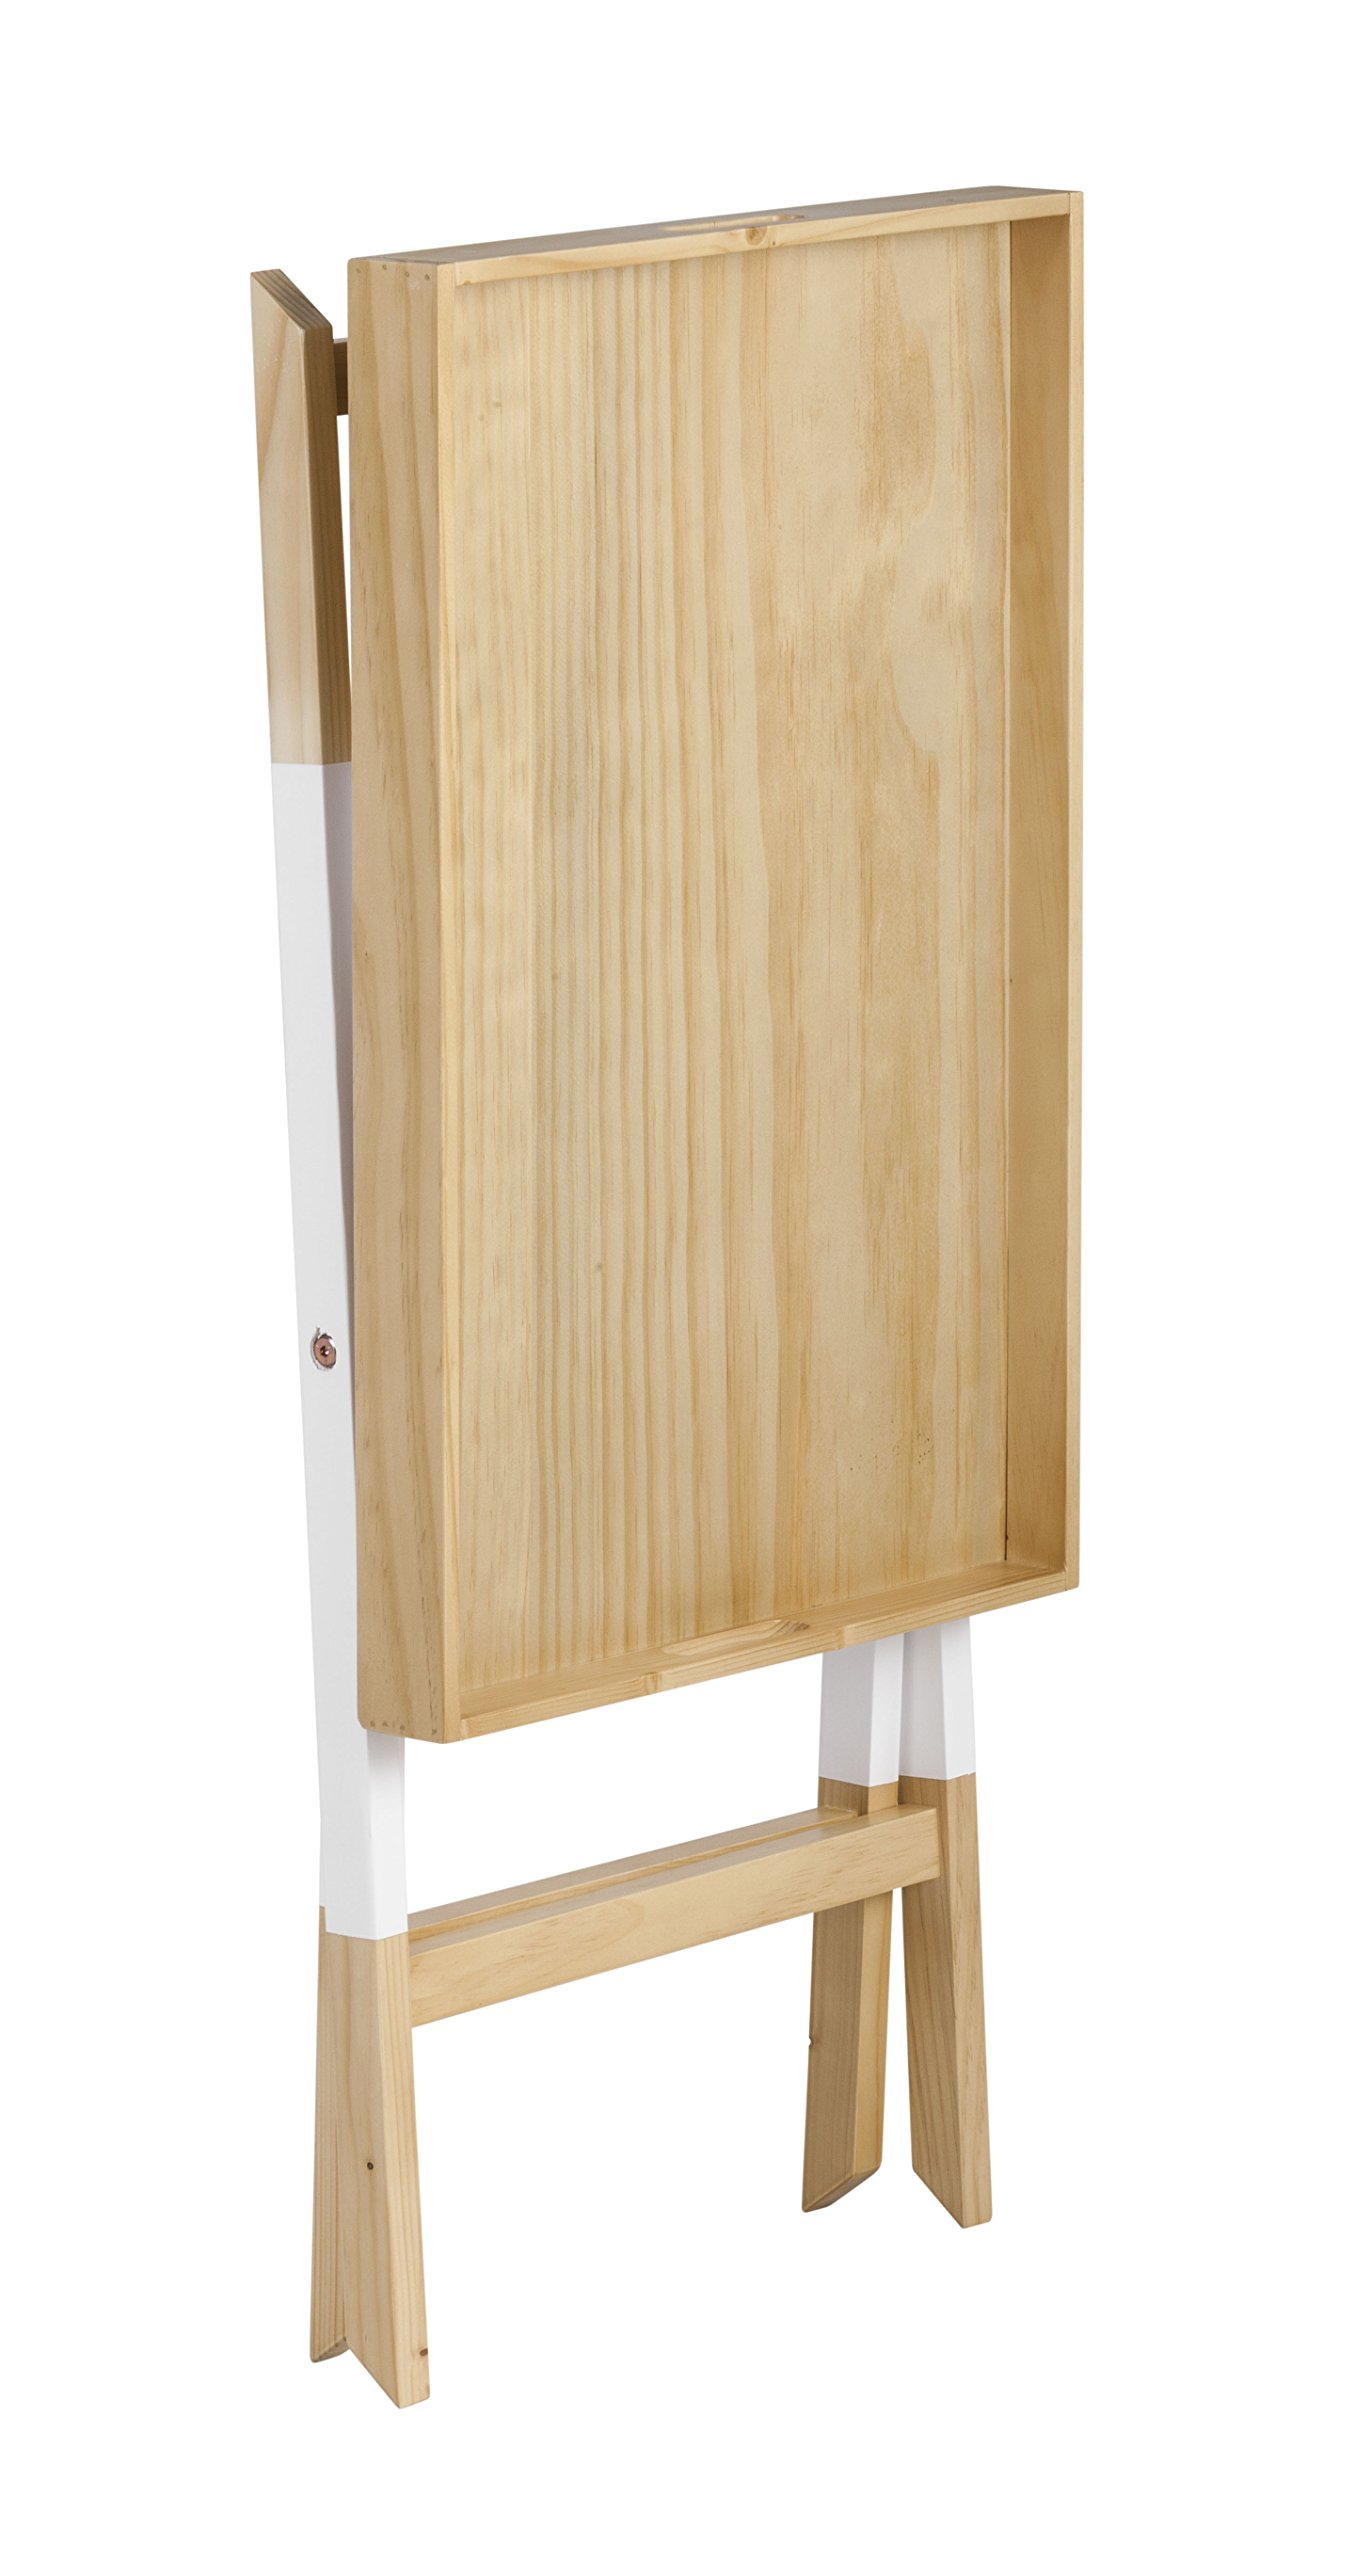 Universal Experts FUST10026A Remus Folding Tray Table, Oak/White by Universal Experts (Image #6)